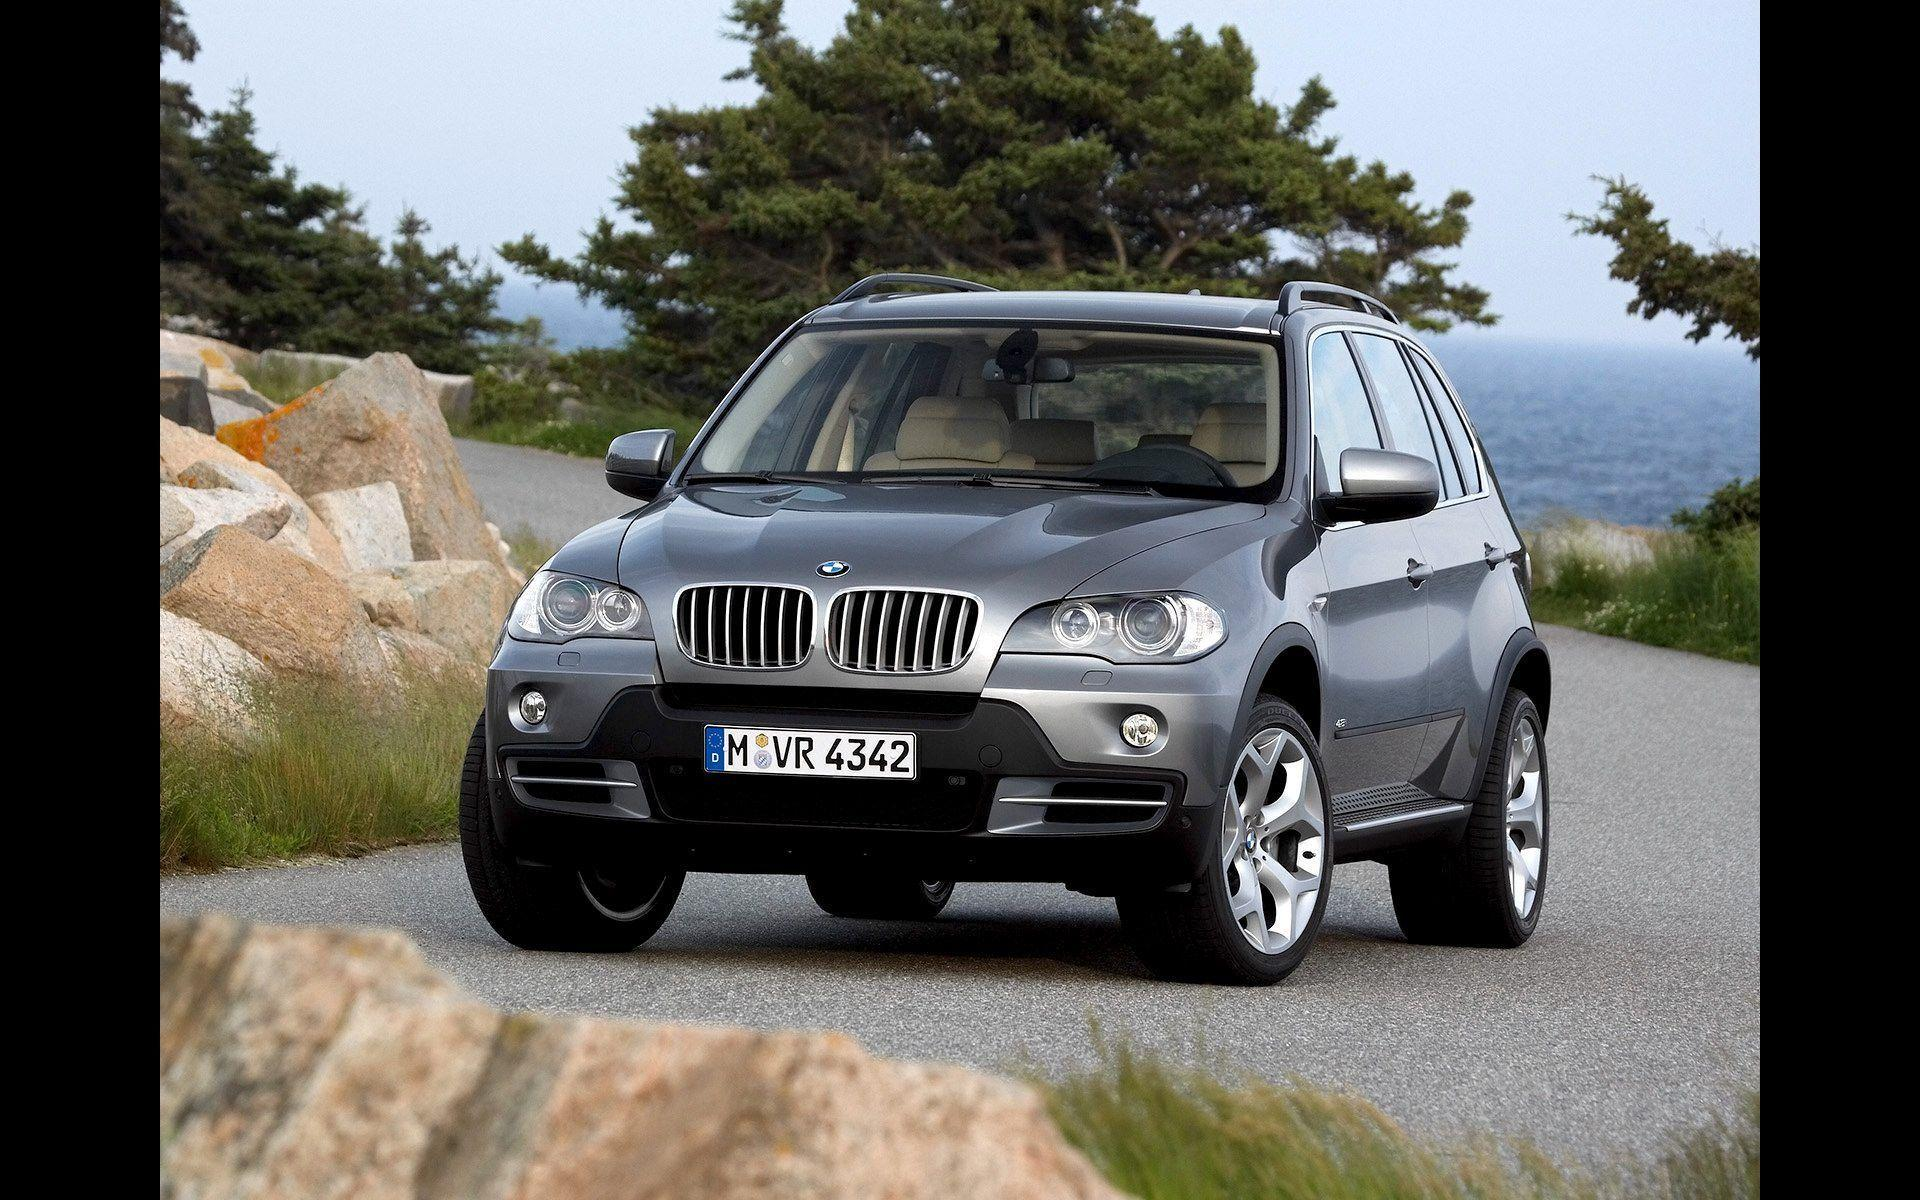 2007 BMW X5 Wallpaper 15 - 1920x1200